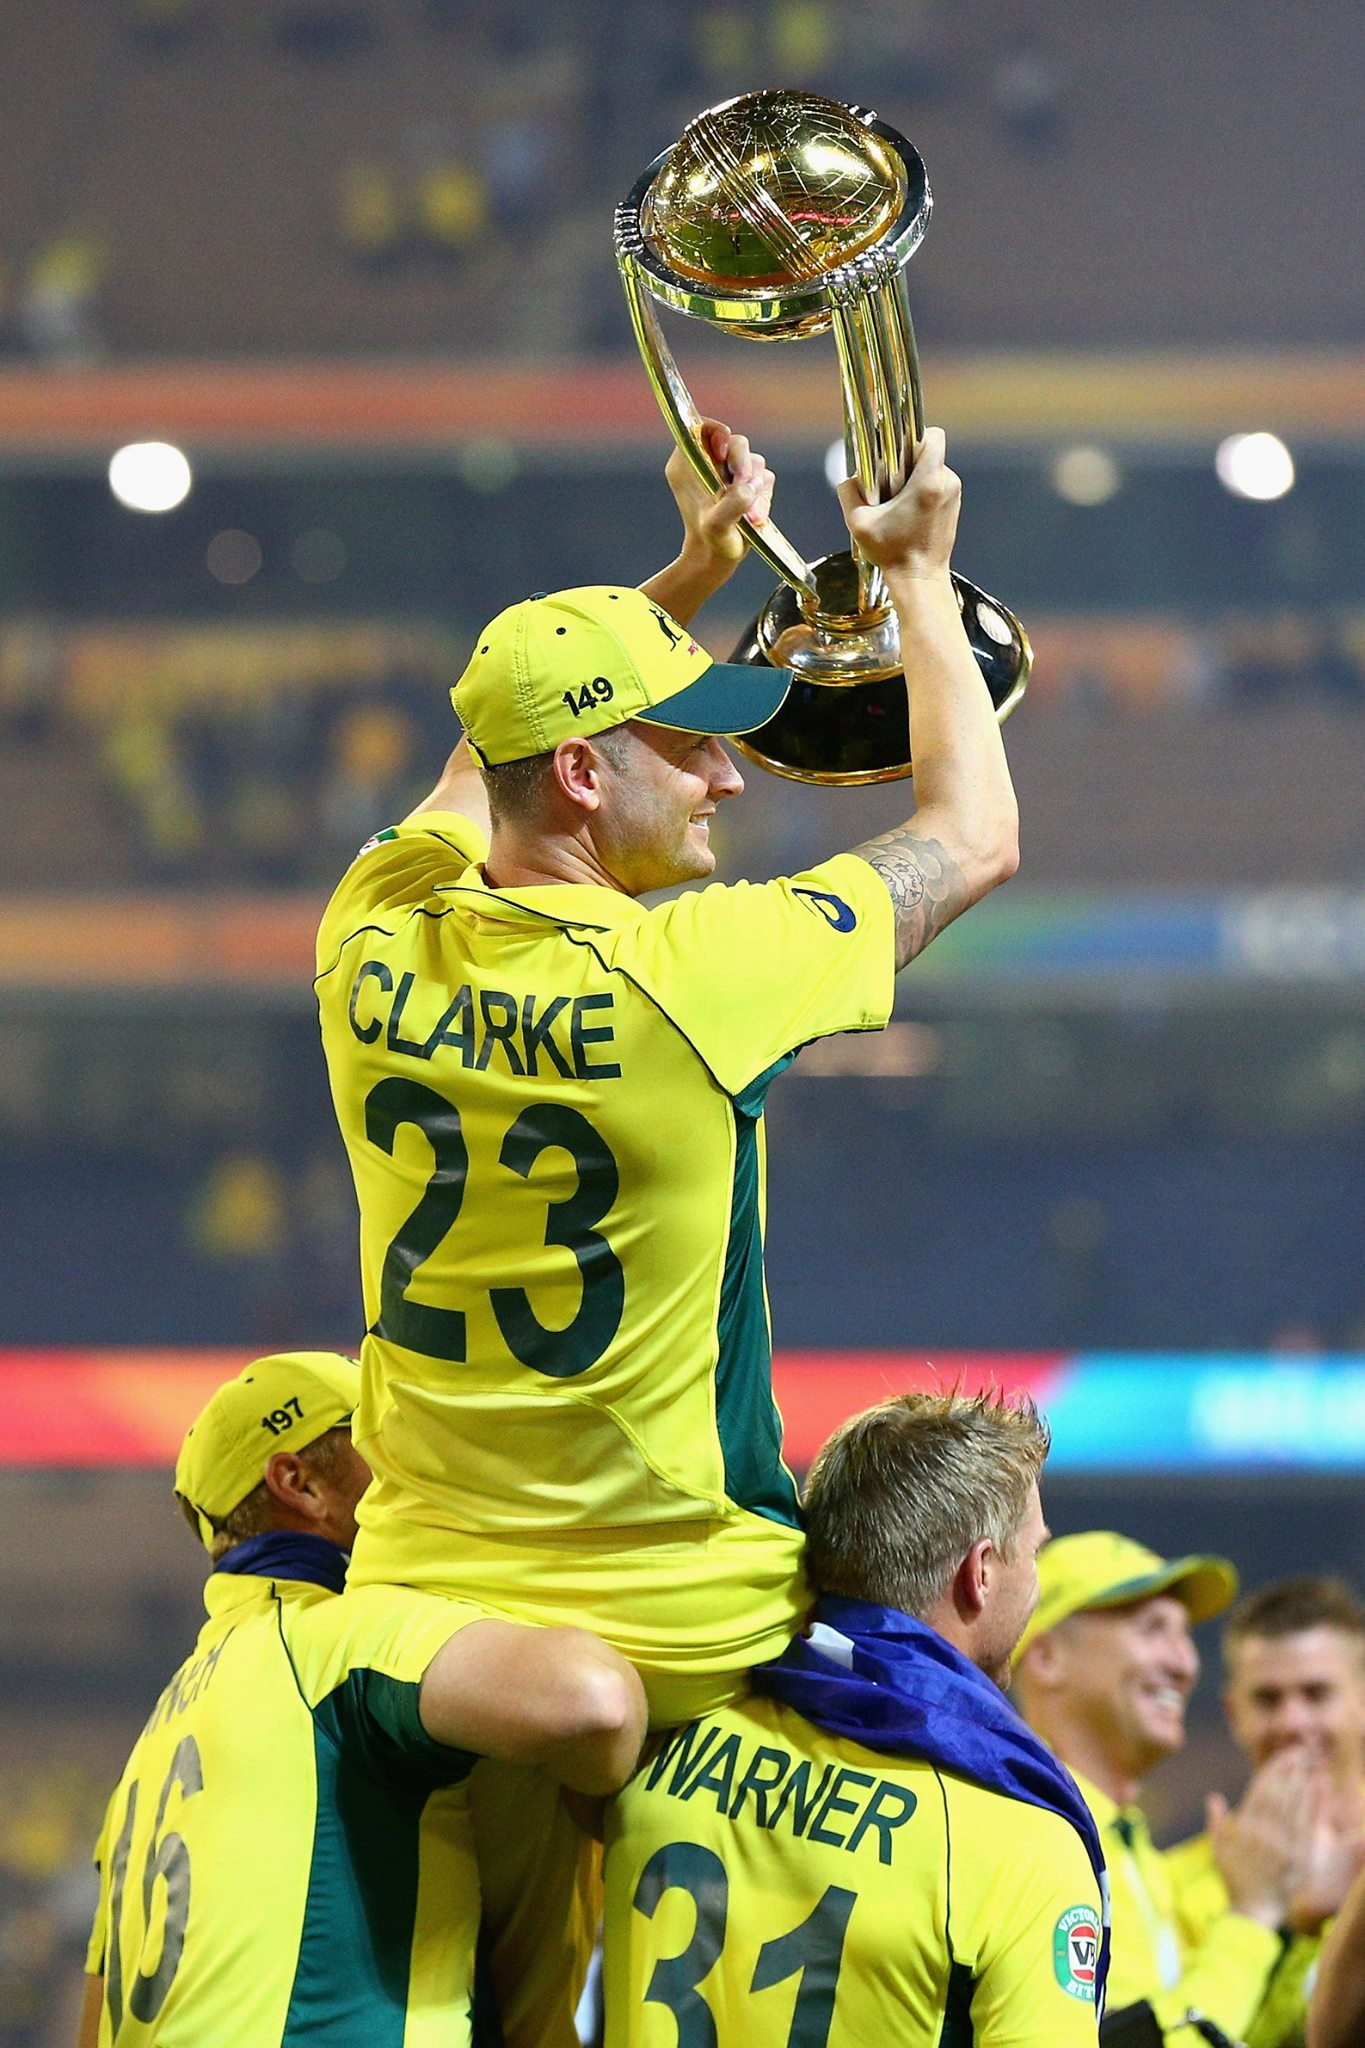 Micheal Clarke retires after giving Australia its 5th World Cup trophy.